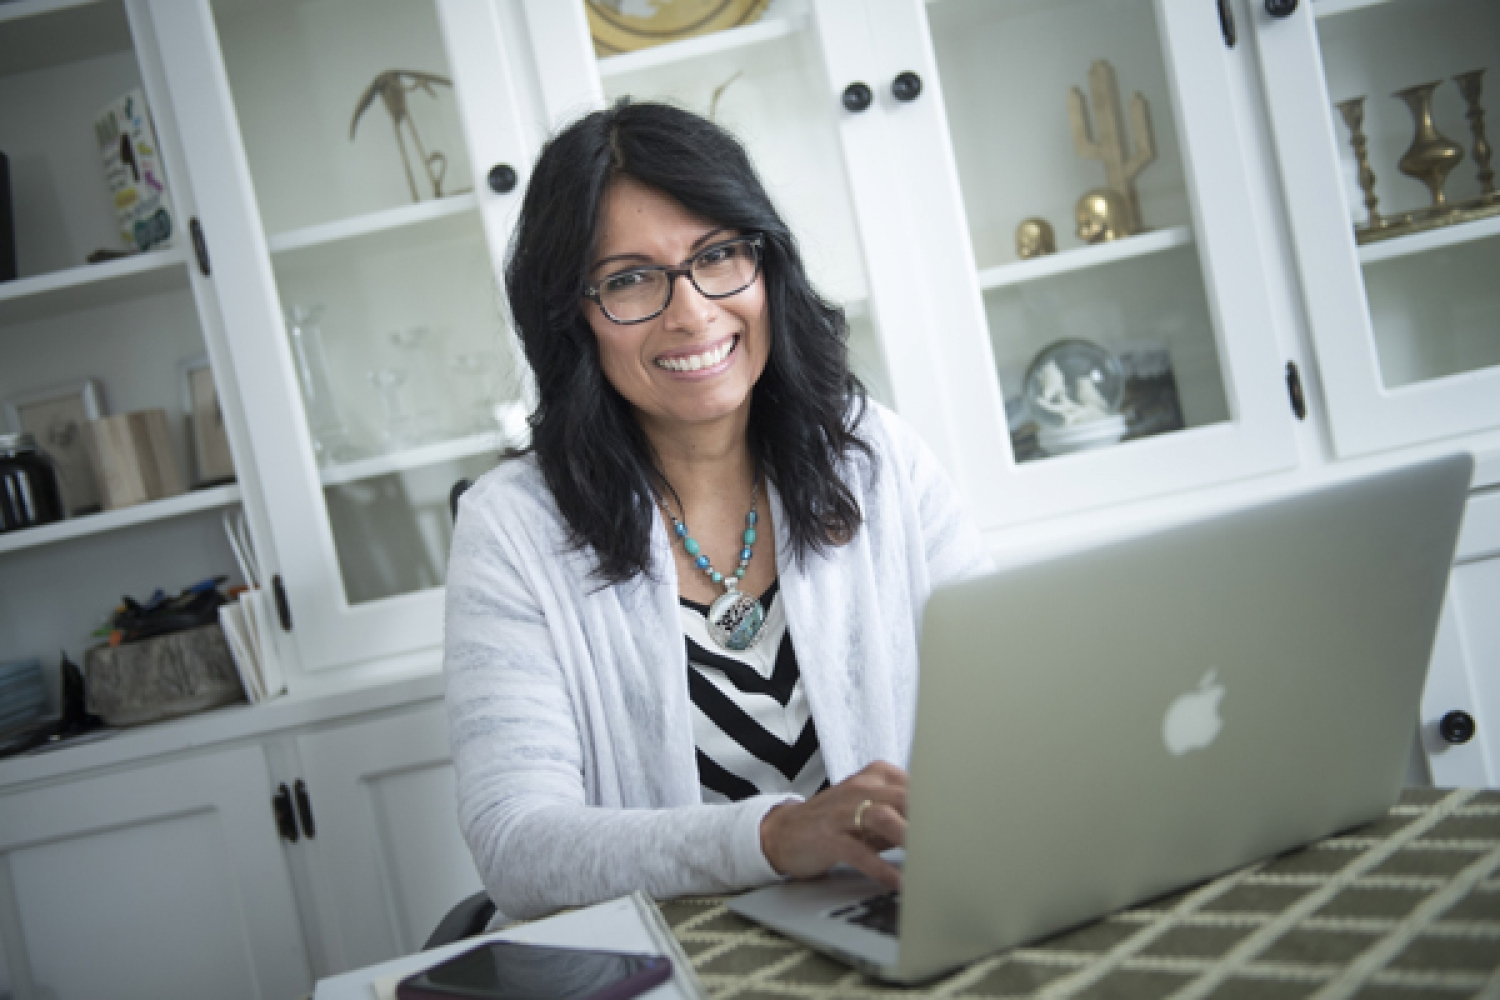 Calling All Entrepreneurs: Life Coaching Based on Personal Experience